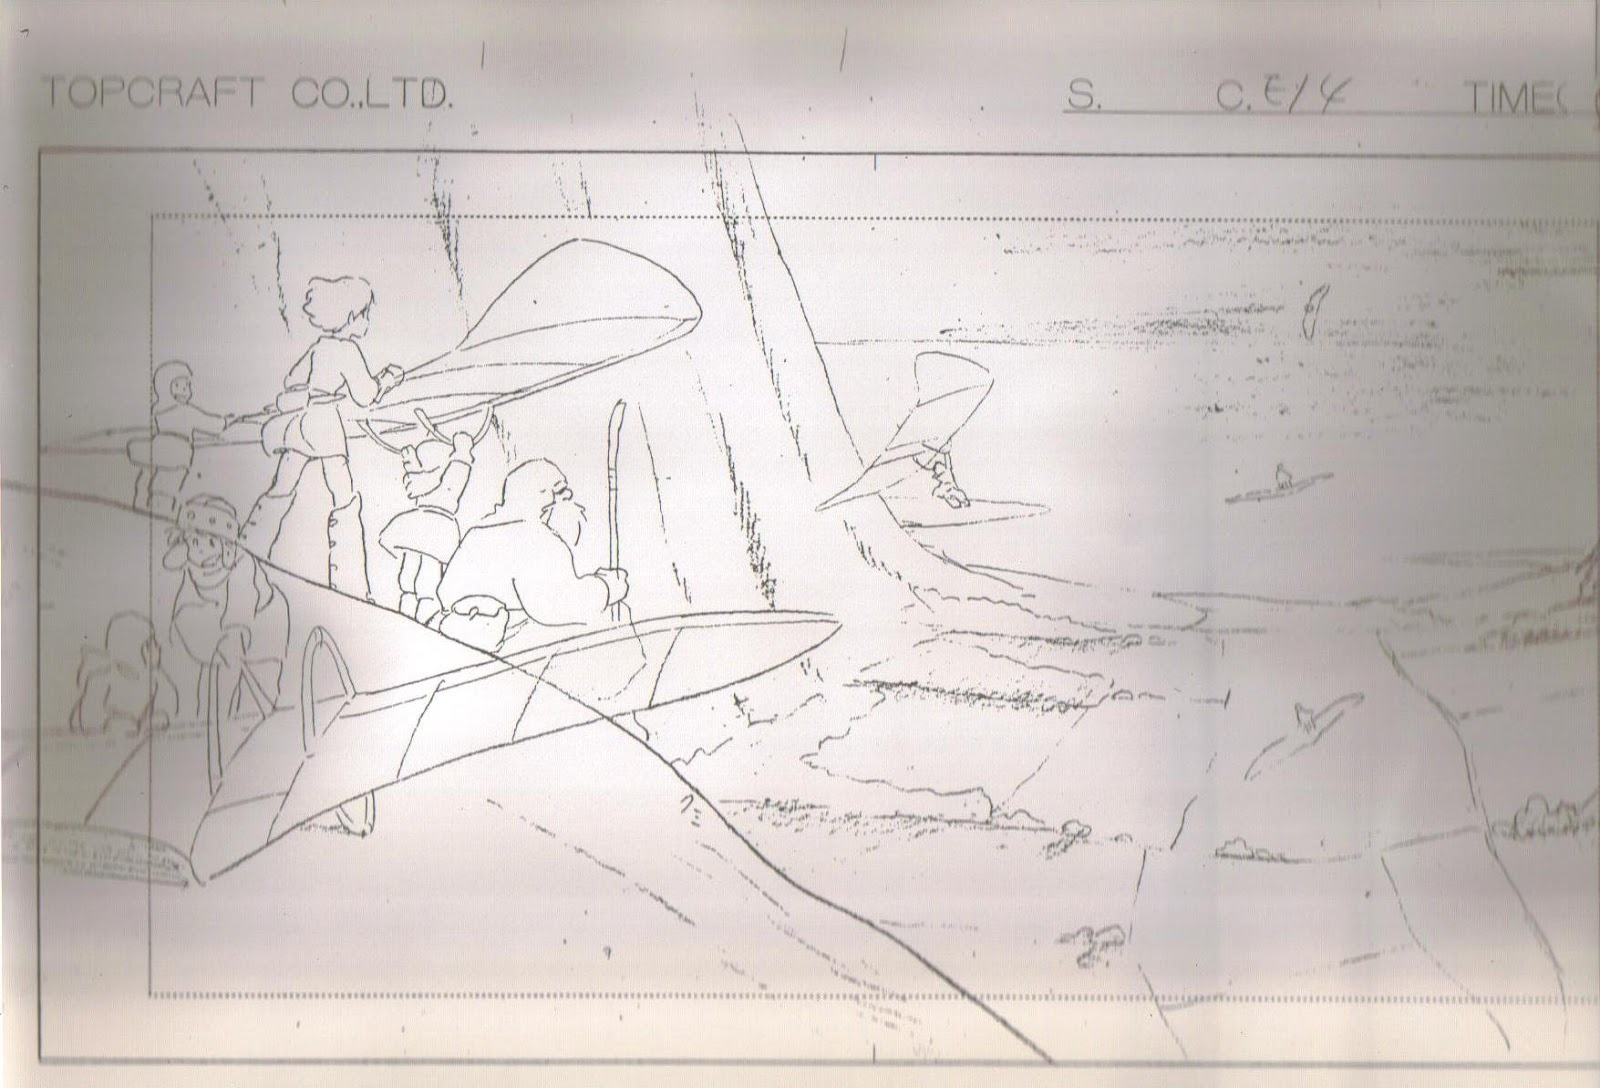 nausicaa_of_the_valley_of_the_wind_concept_art_storyboard_12.jpg